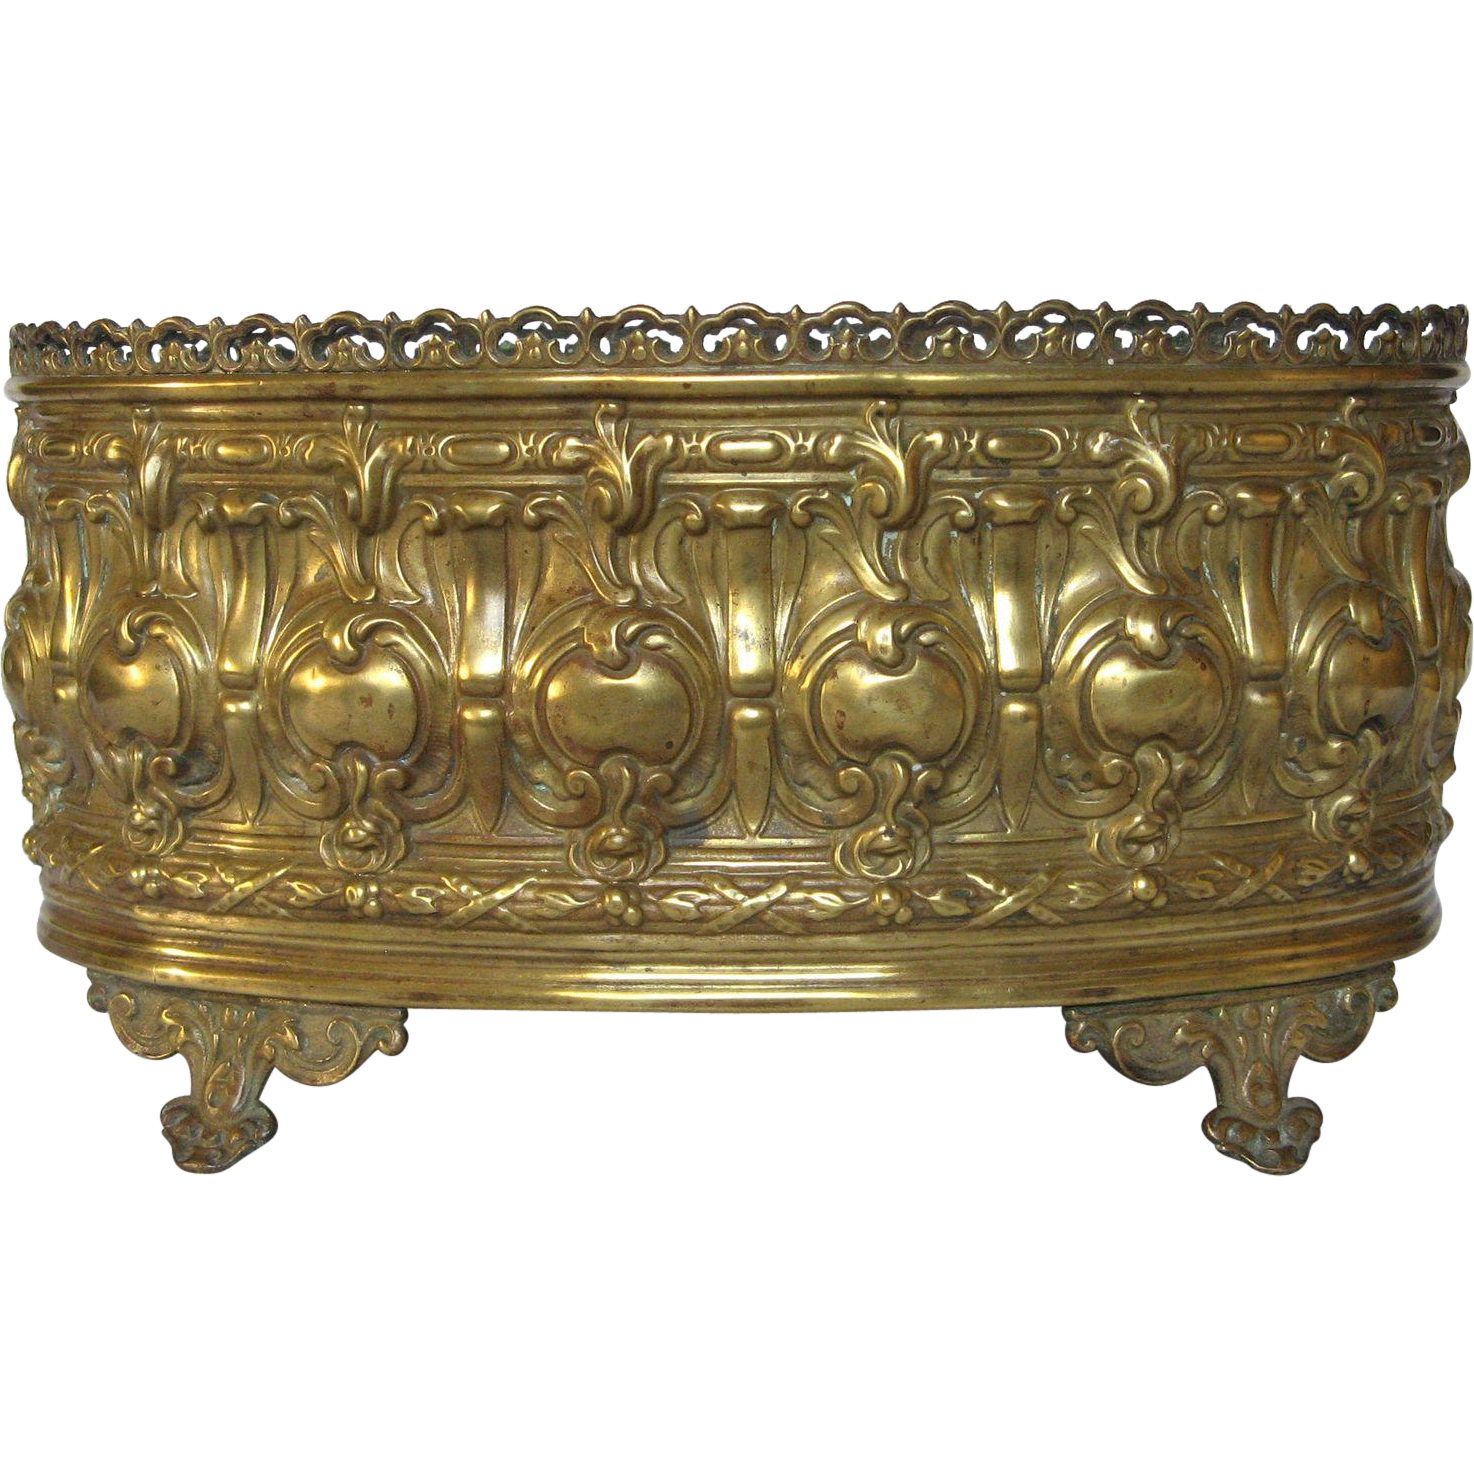 19 c french brass repousse planter jardiniere from. Black Bedroom Furniture Sets. Home Design Ideas